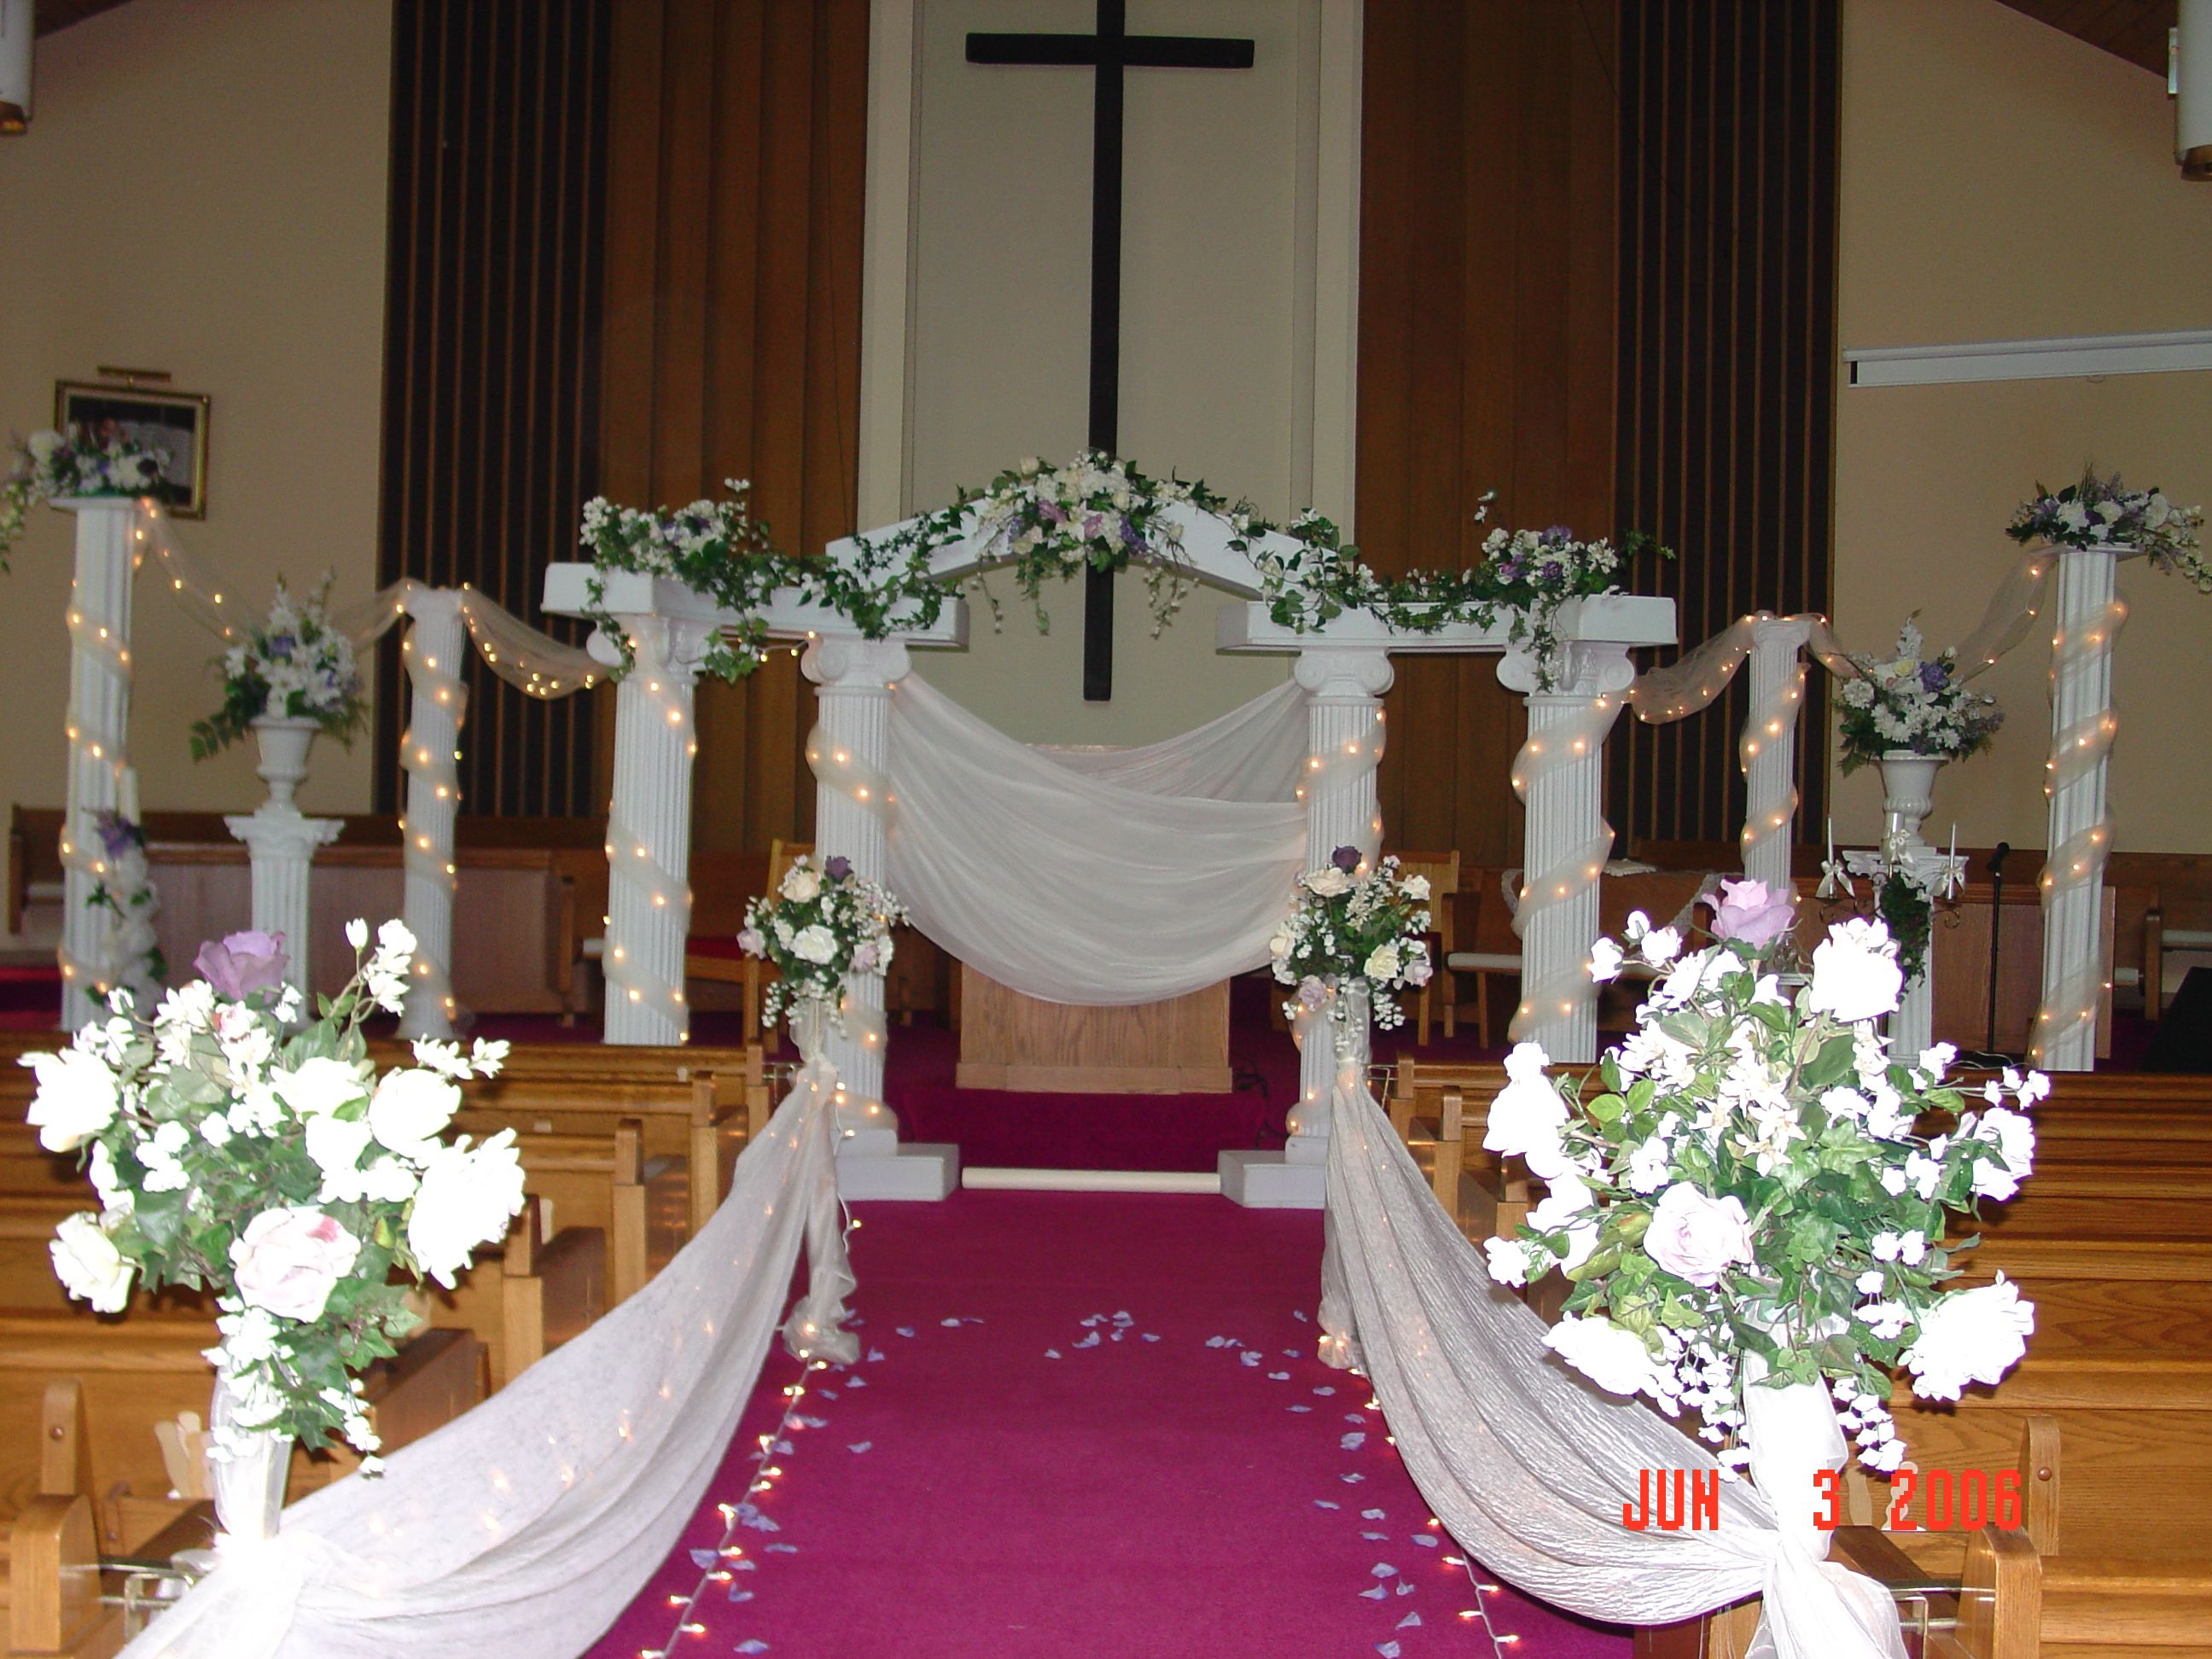 Church Decor Colonnade Set Accented With Additional Columns And Florals